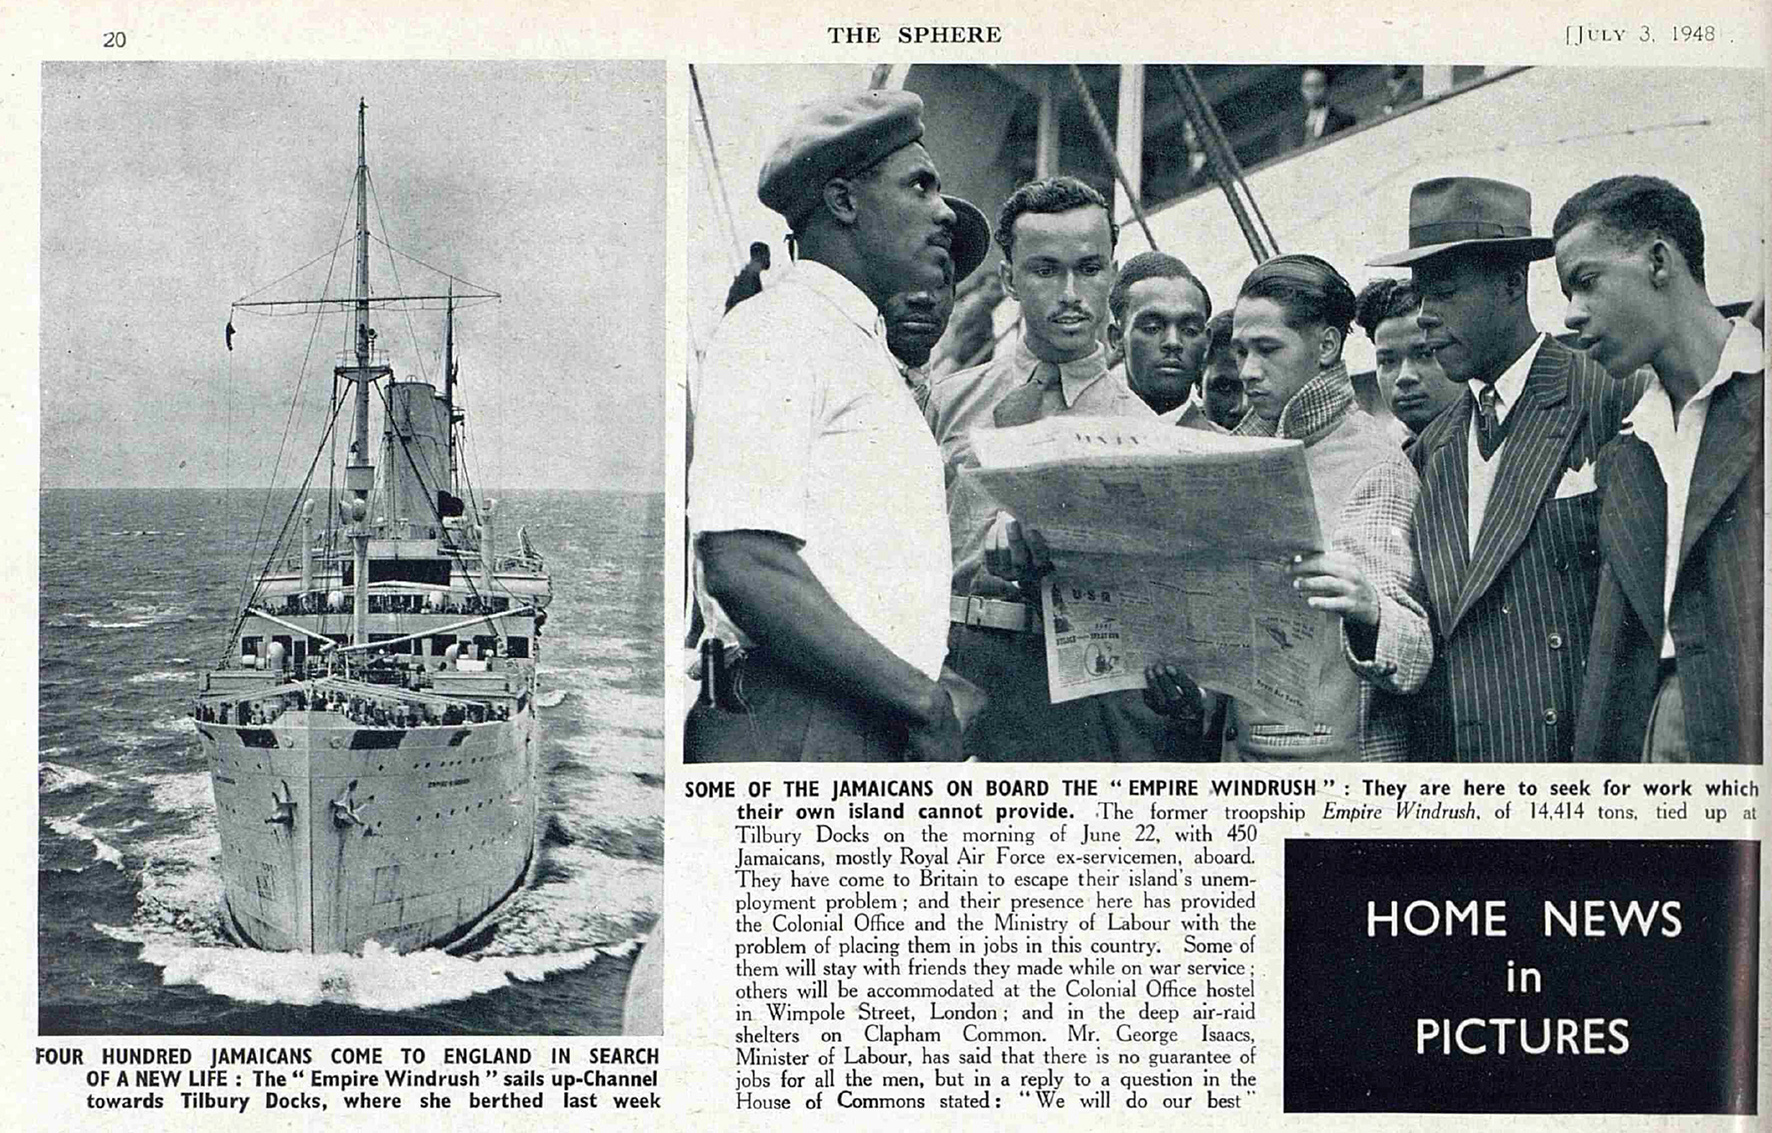 Photograph of people on the Windrush | The Sphere, 3 July 1948